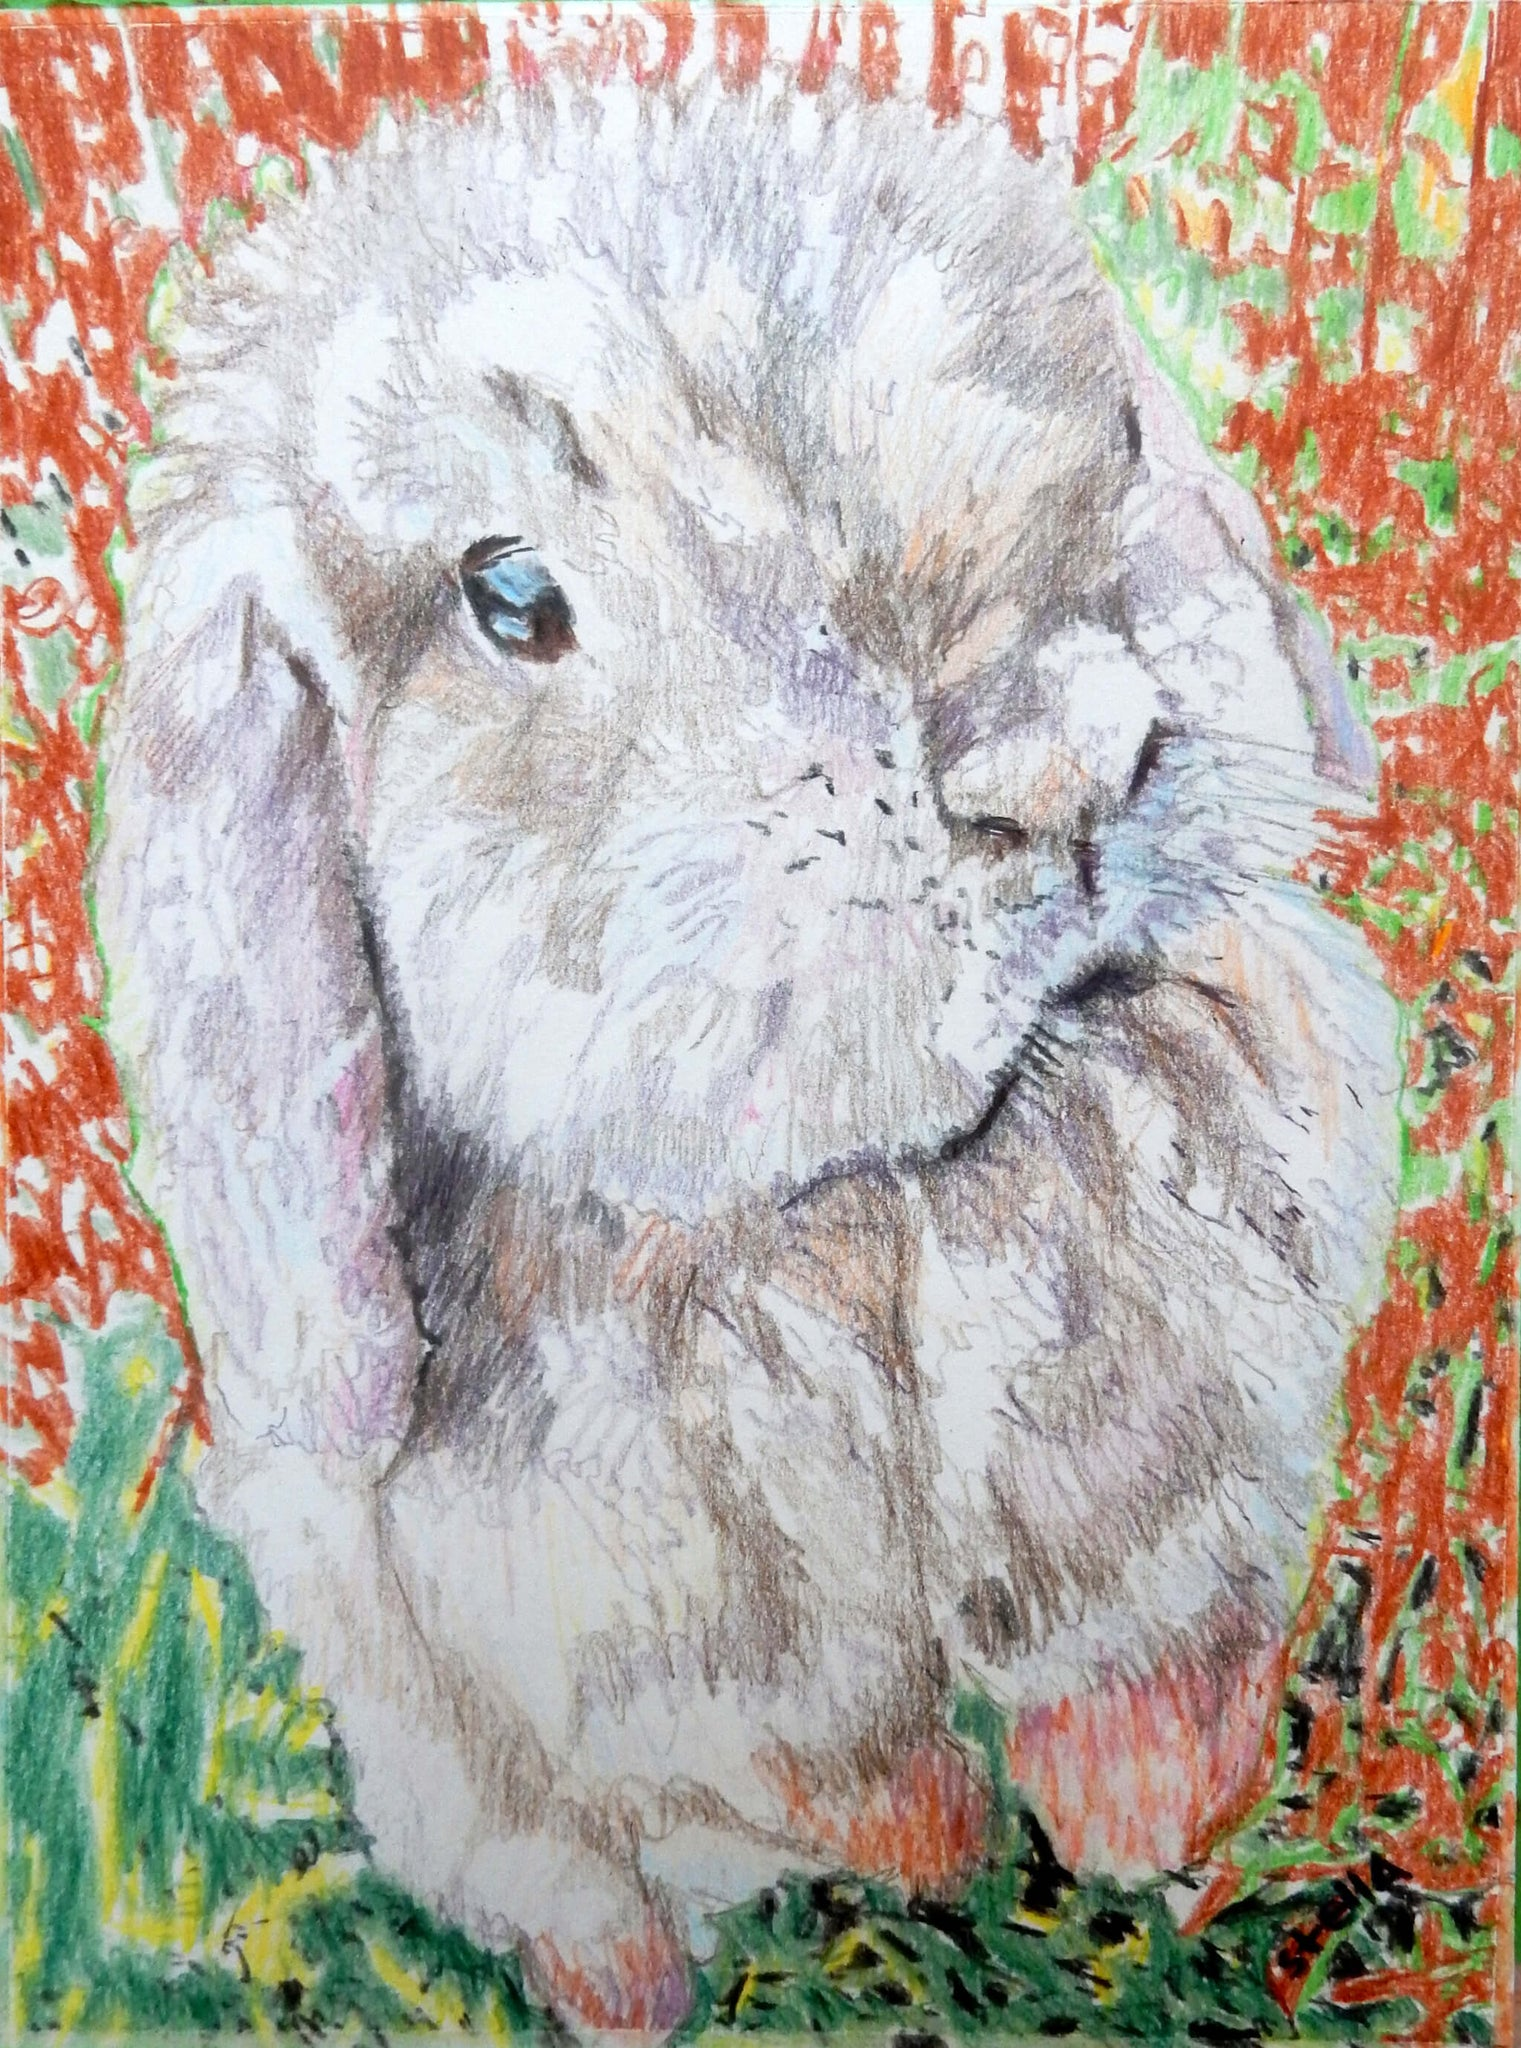 Dexter the lop-eared rabbit pet portrait pencil on paper artwork by Stella Tooth.